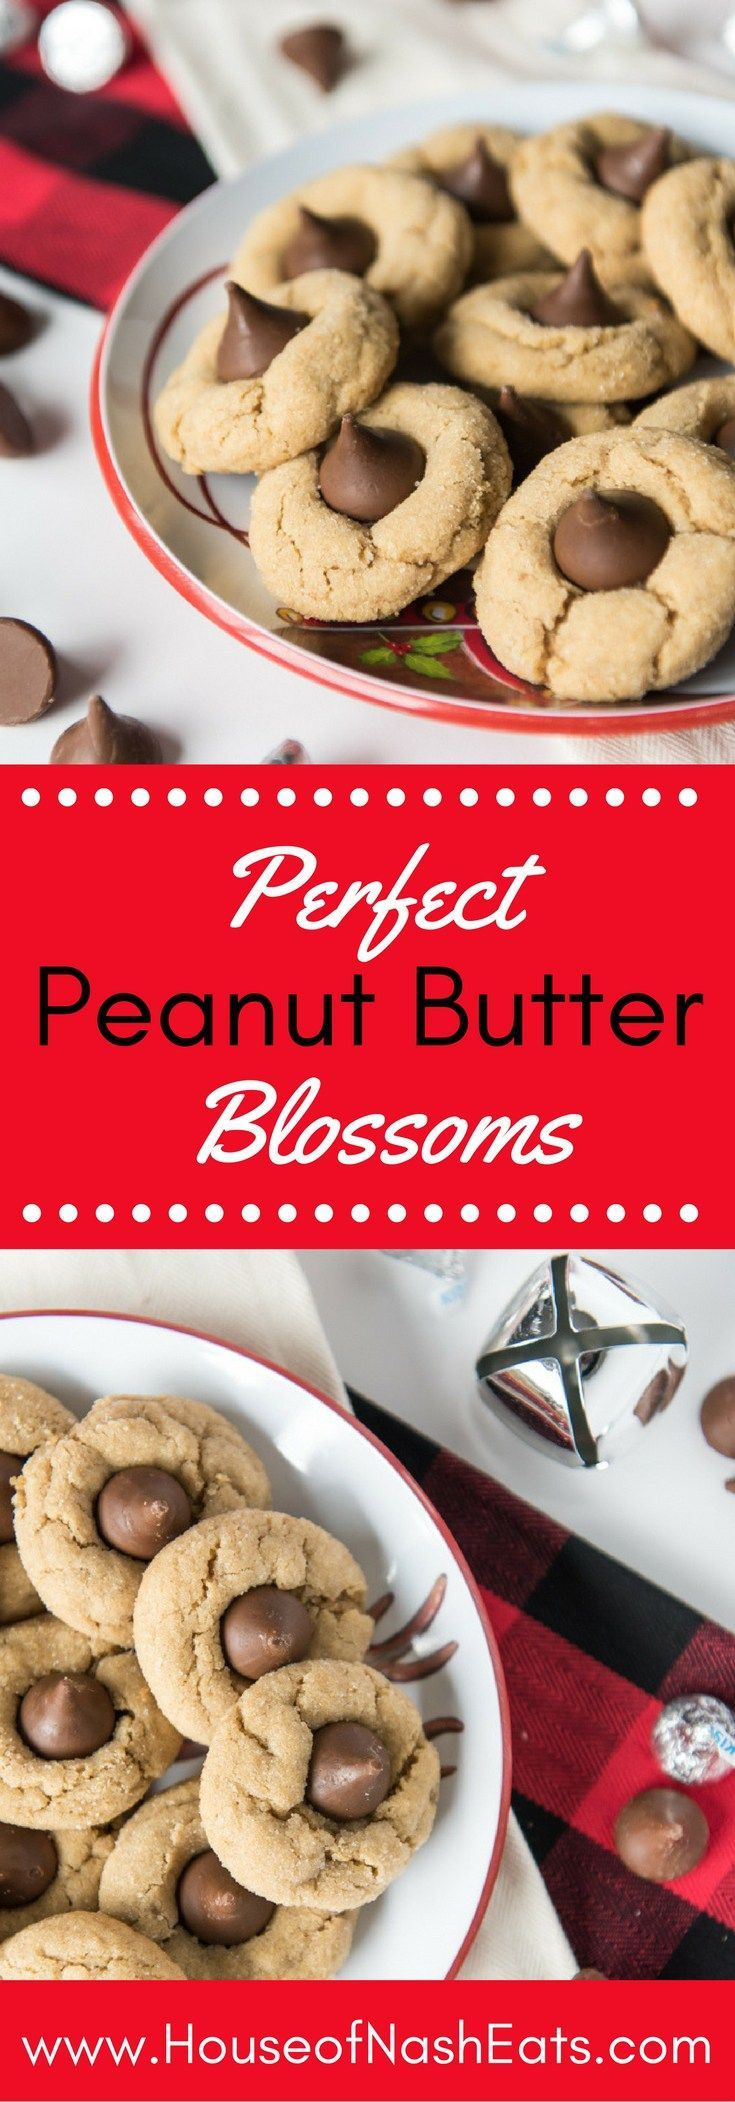 Peanut Butter Blossoms Simple, classic and iconic, these peanut butter blossoms are Christmas baking at it's best!   They are soft & chewy (and stay that way!), coated in crackly, sparkling sugar, and have a chocolate Hershey's Kiss in the center of each cookie.  They are one of our all-time favorite Christmas cookies!Simple English  Simple Eng...